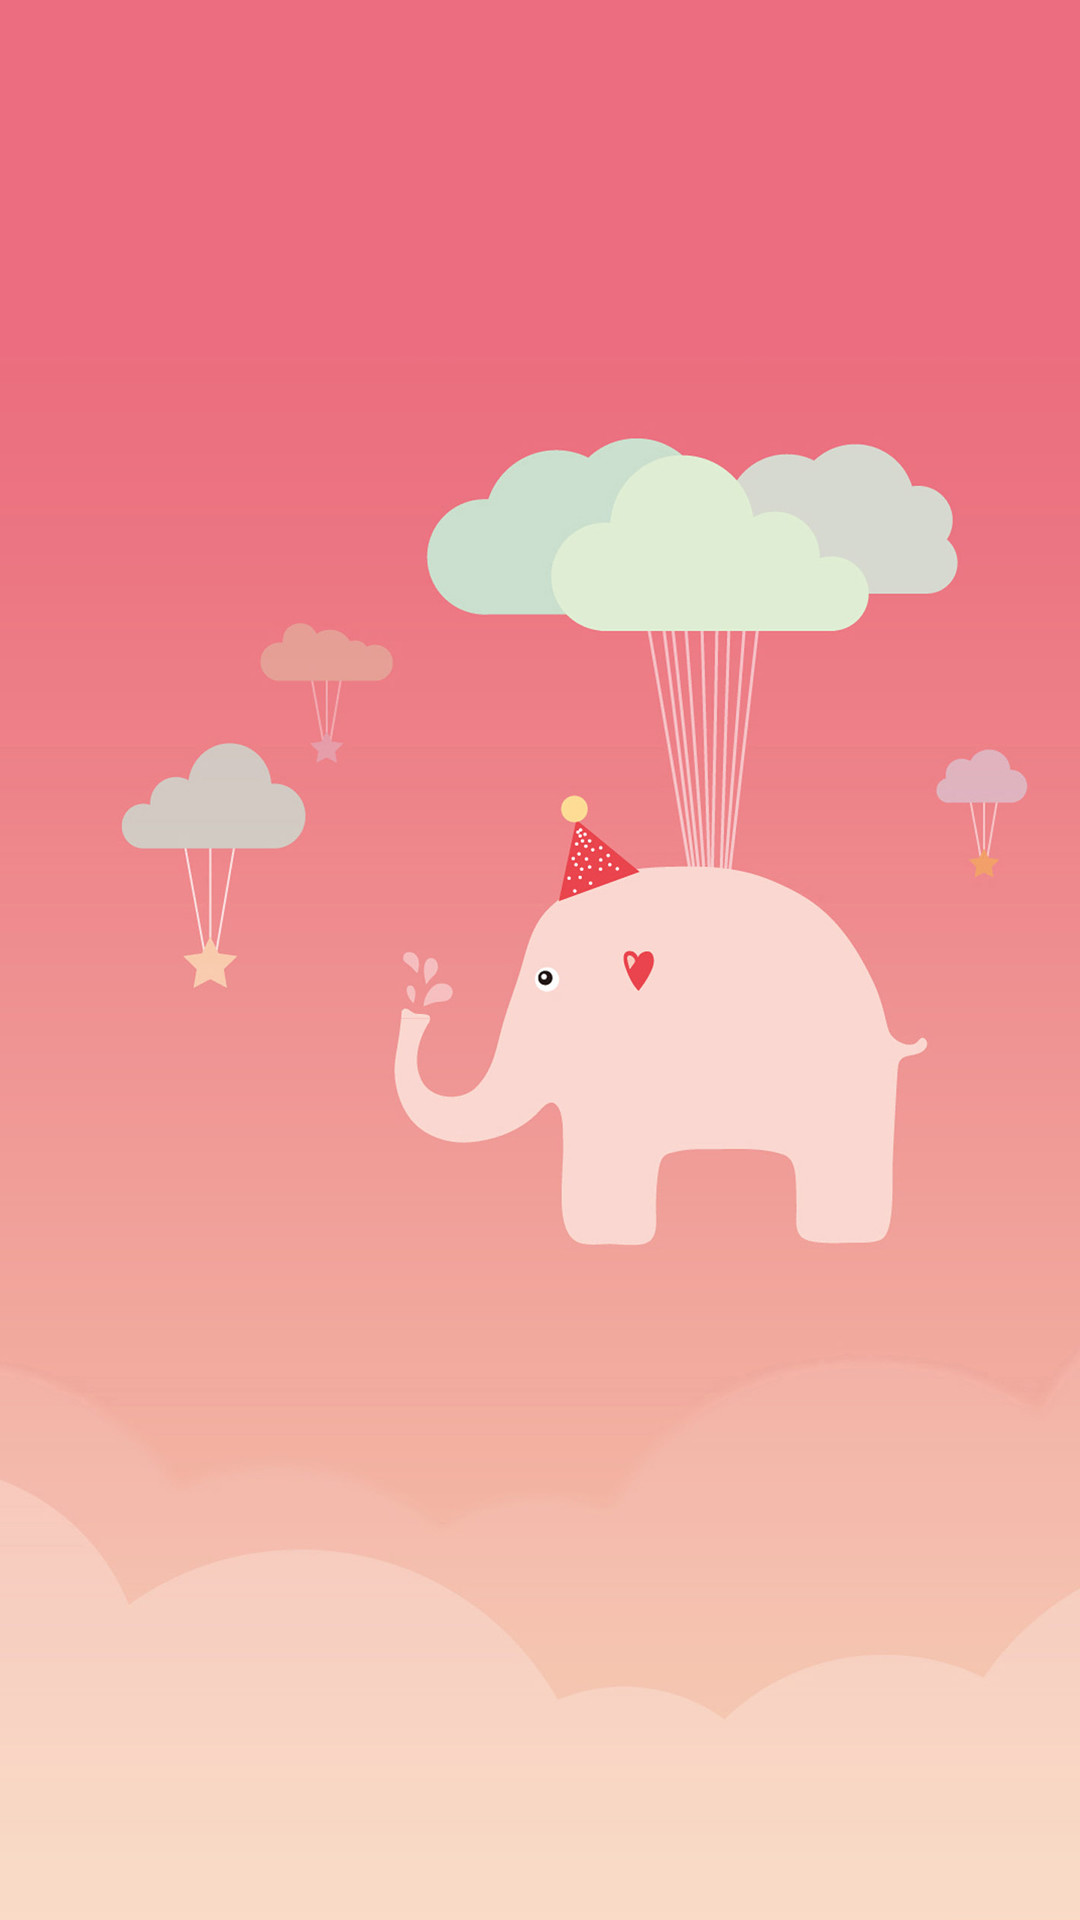 1080x1920 Cute Elephant iPhone 6 Wallpaper Download | iPhone Wallpapers, iPad .